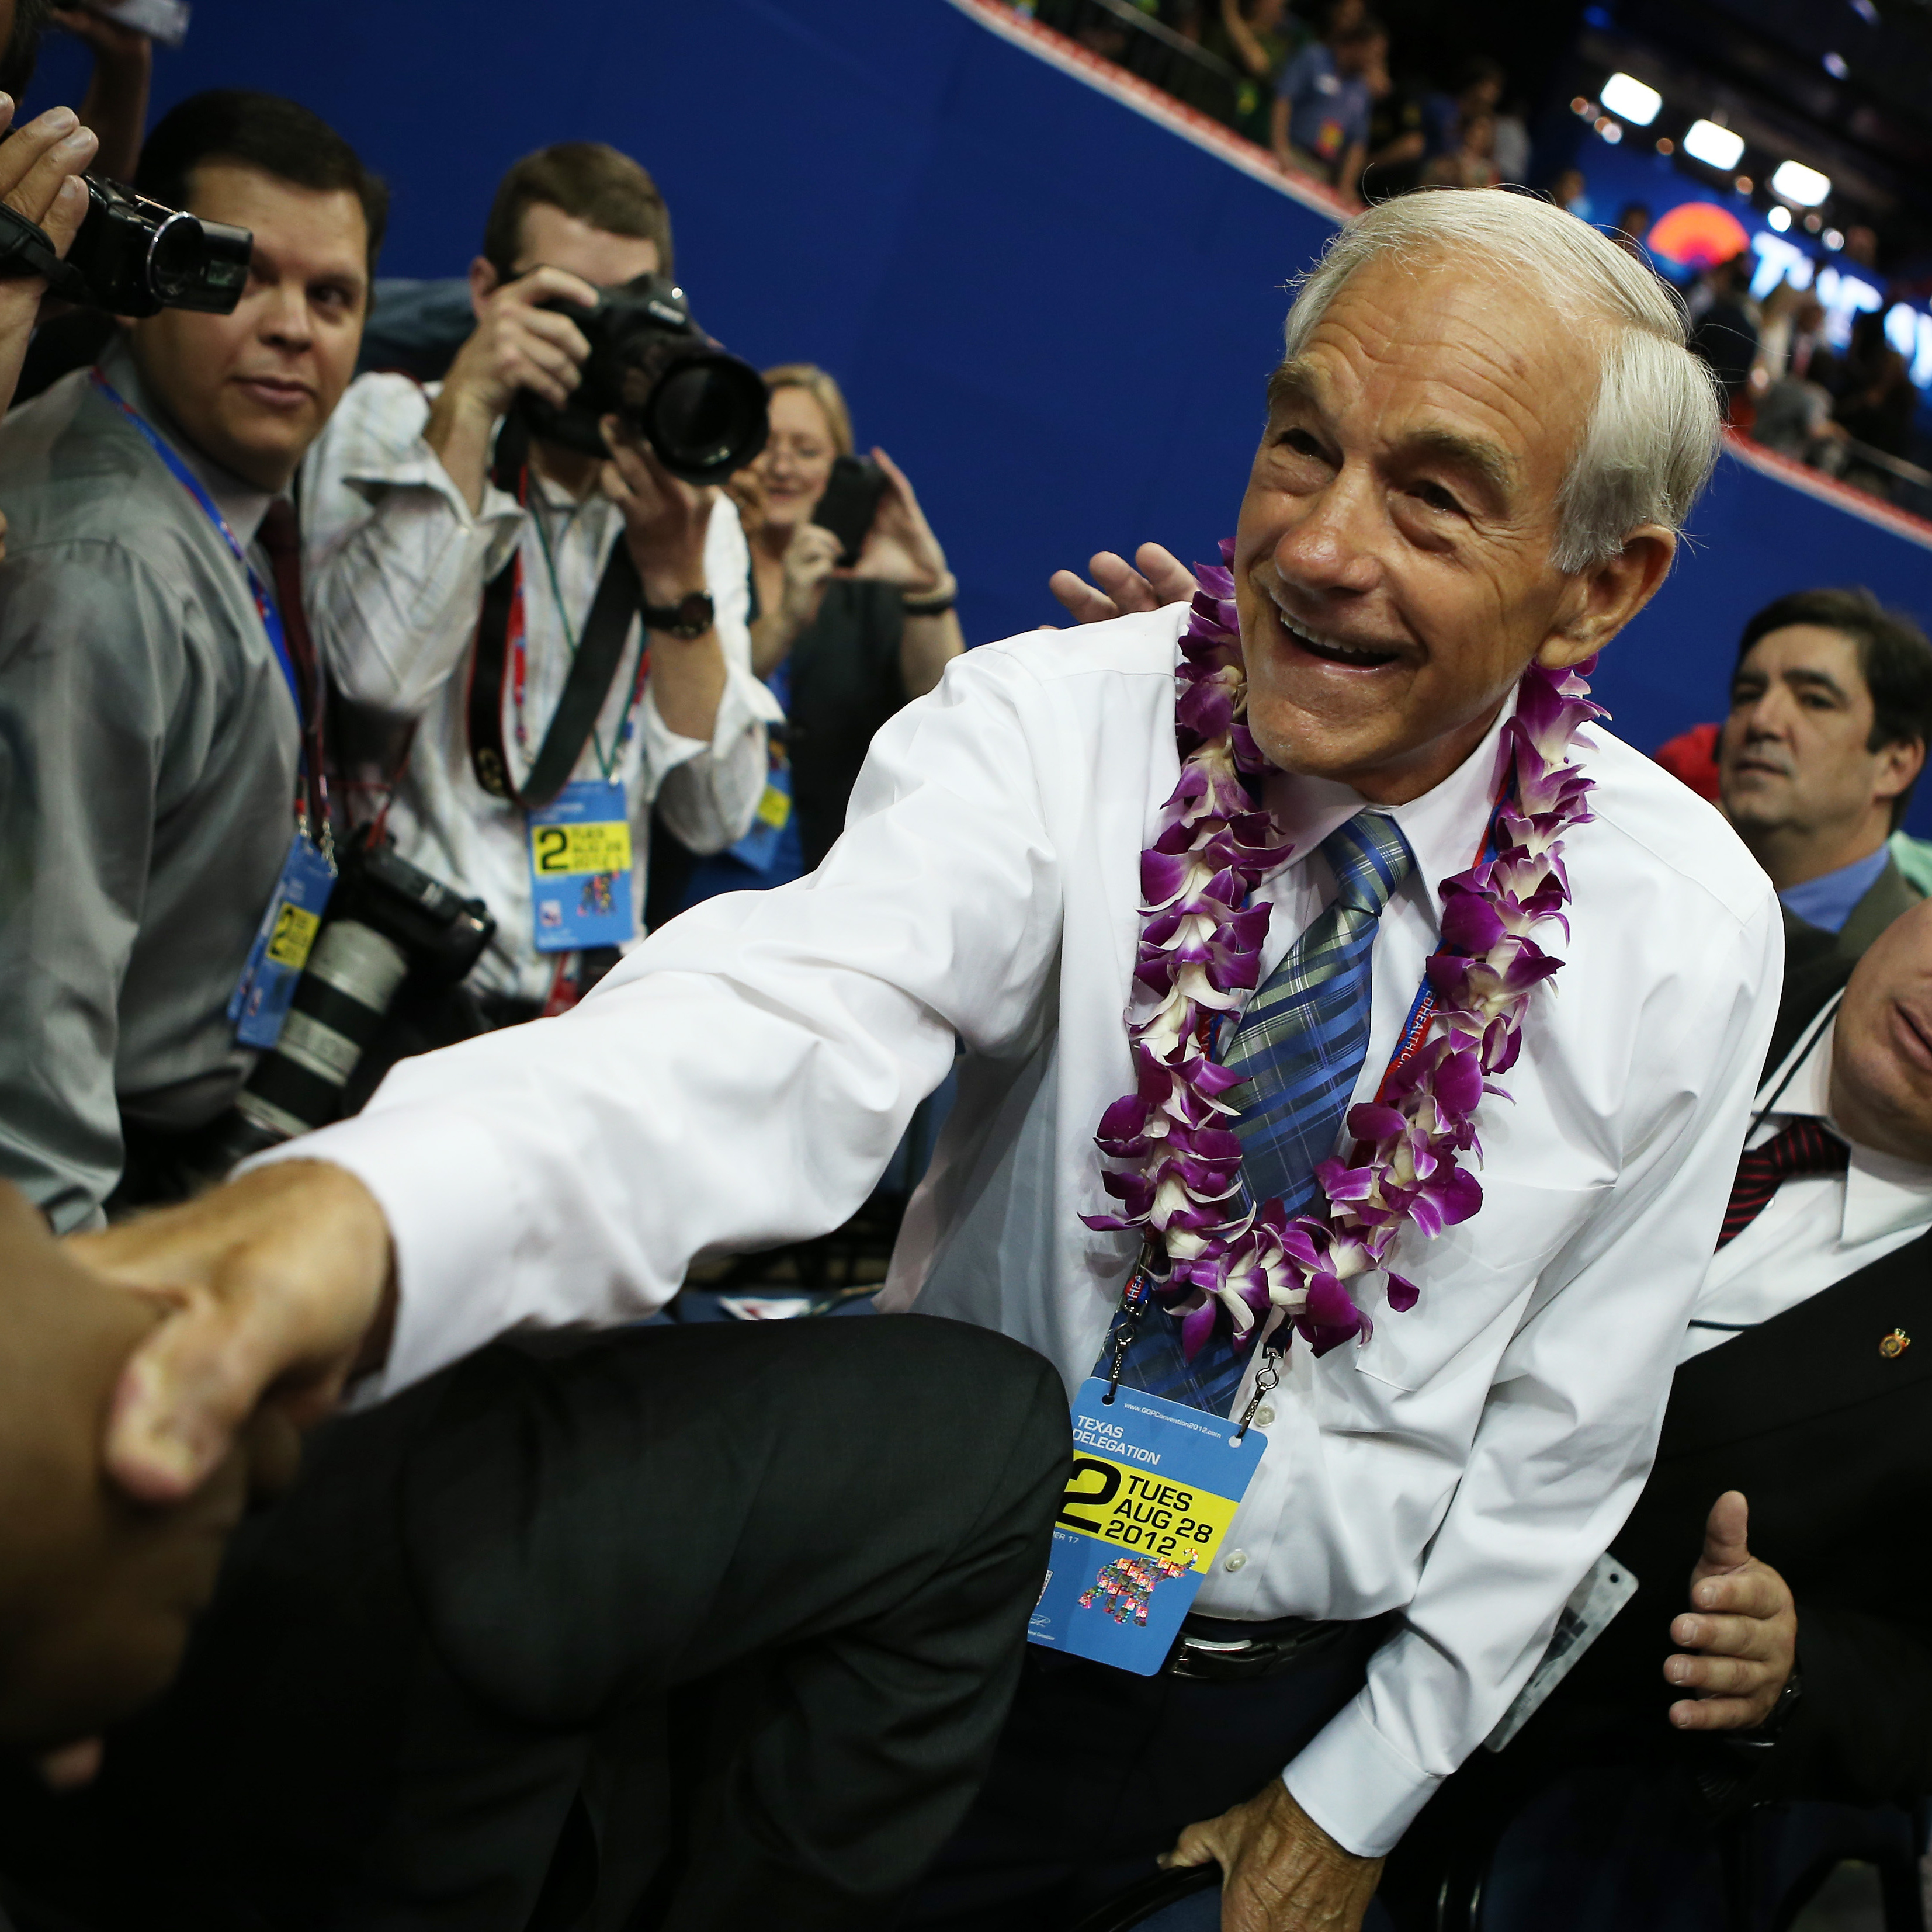 Rep. Ron Paul, R-Texas, and his supporters made some noise a few minutes before the 2012 Republican National Convention convened in Tampa. He walked across the convention floor, to the delight of his supporters.